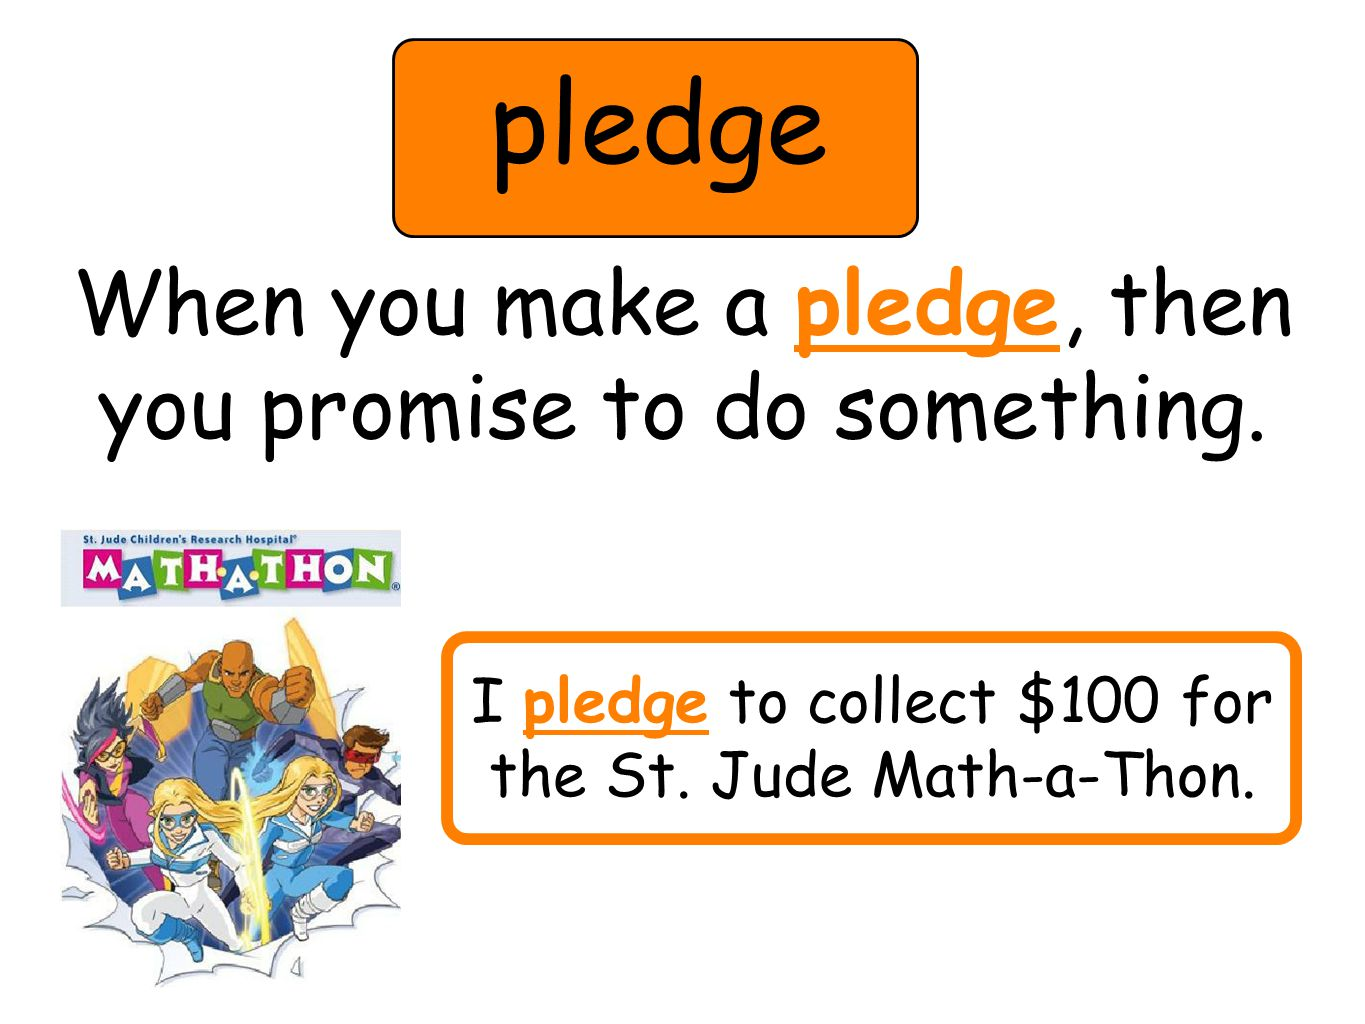 pledge When you make a pledge, then you promise to do something.